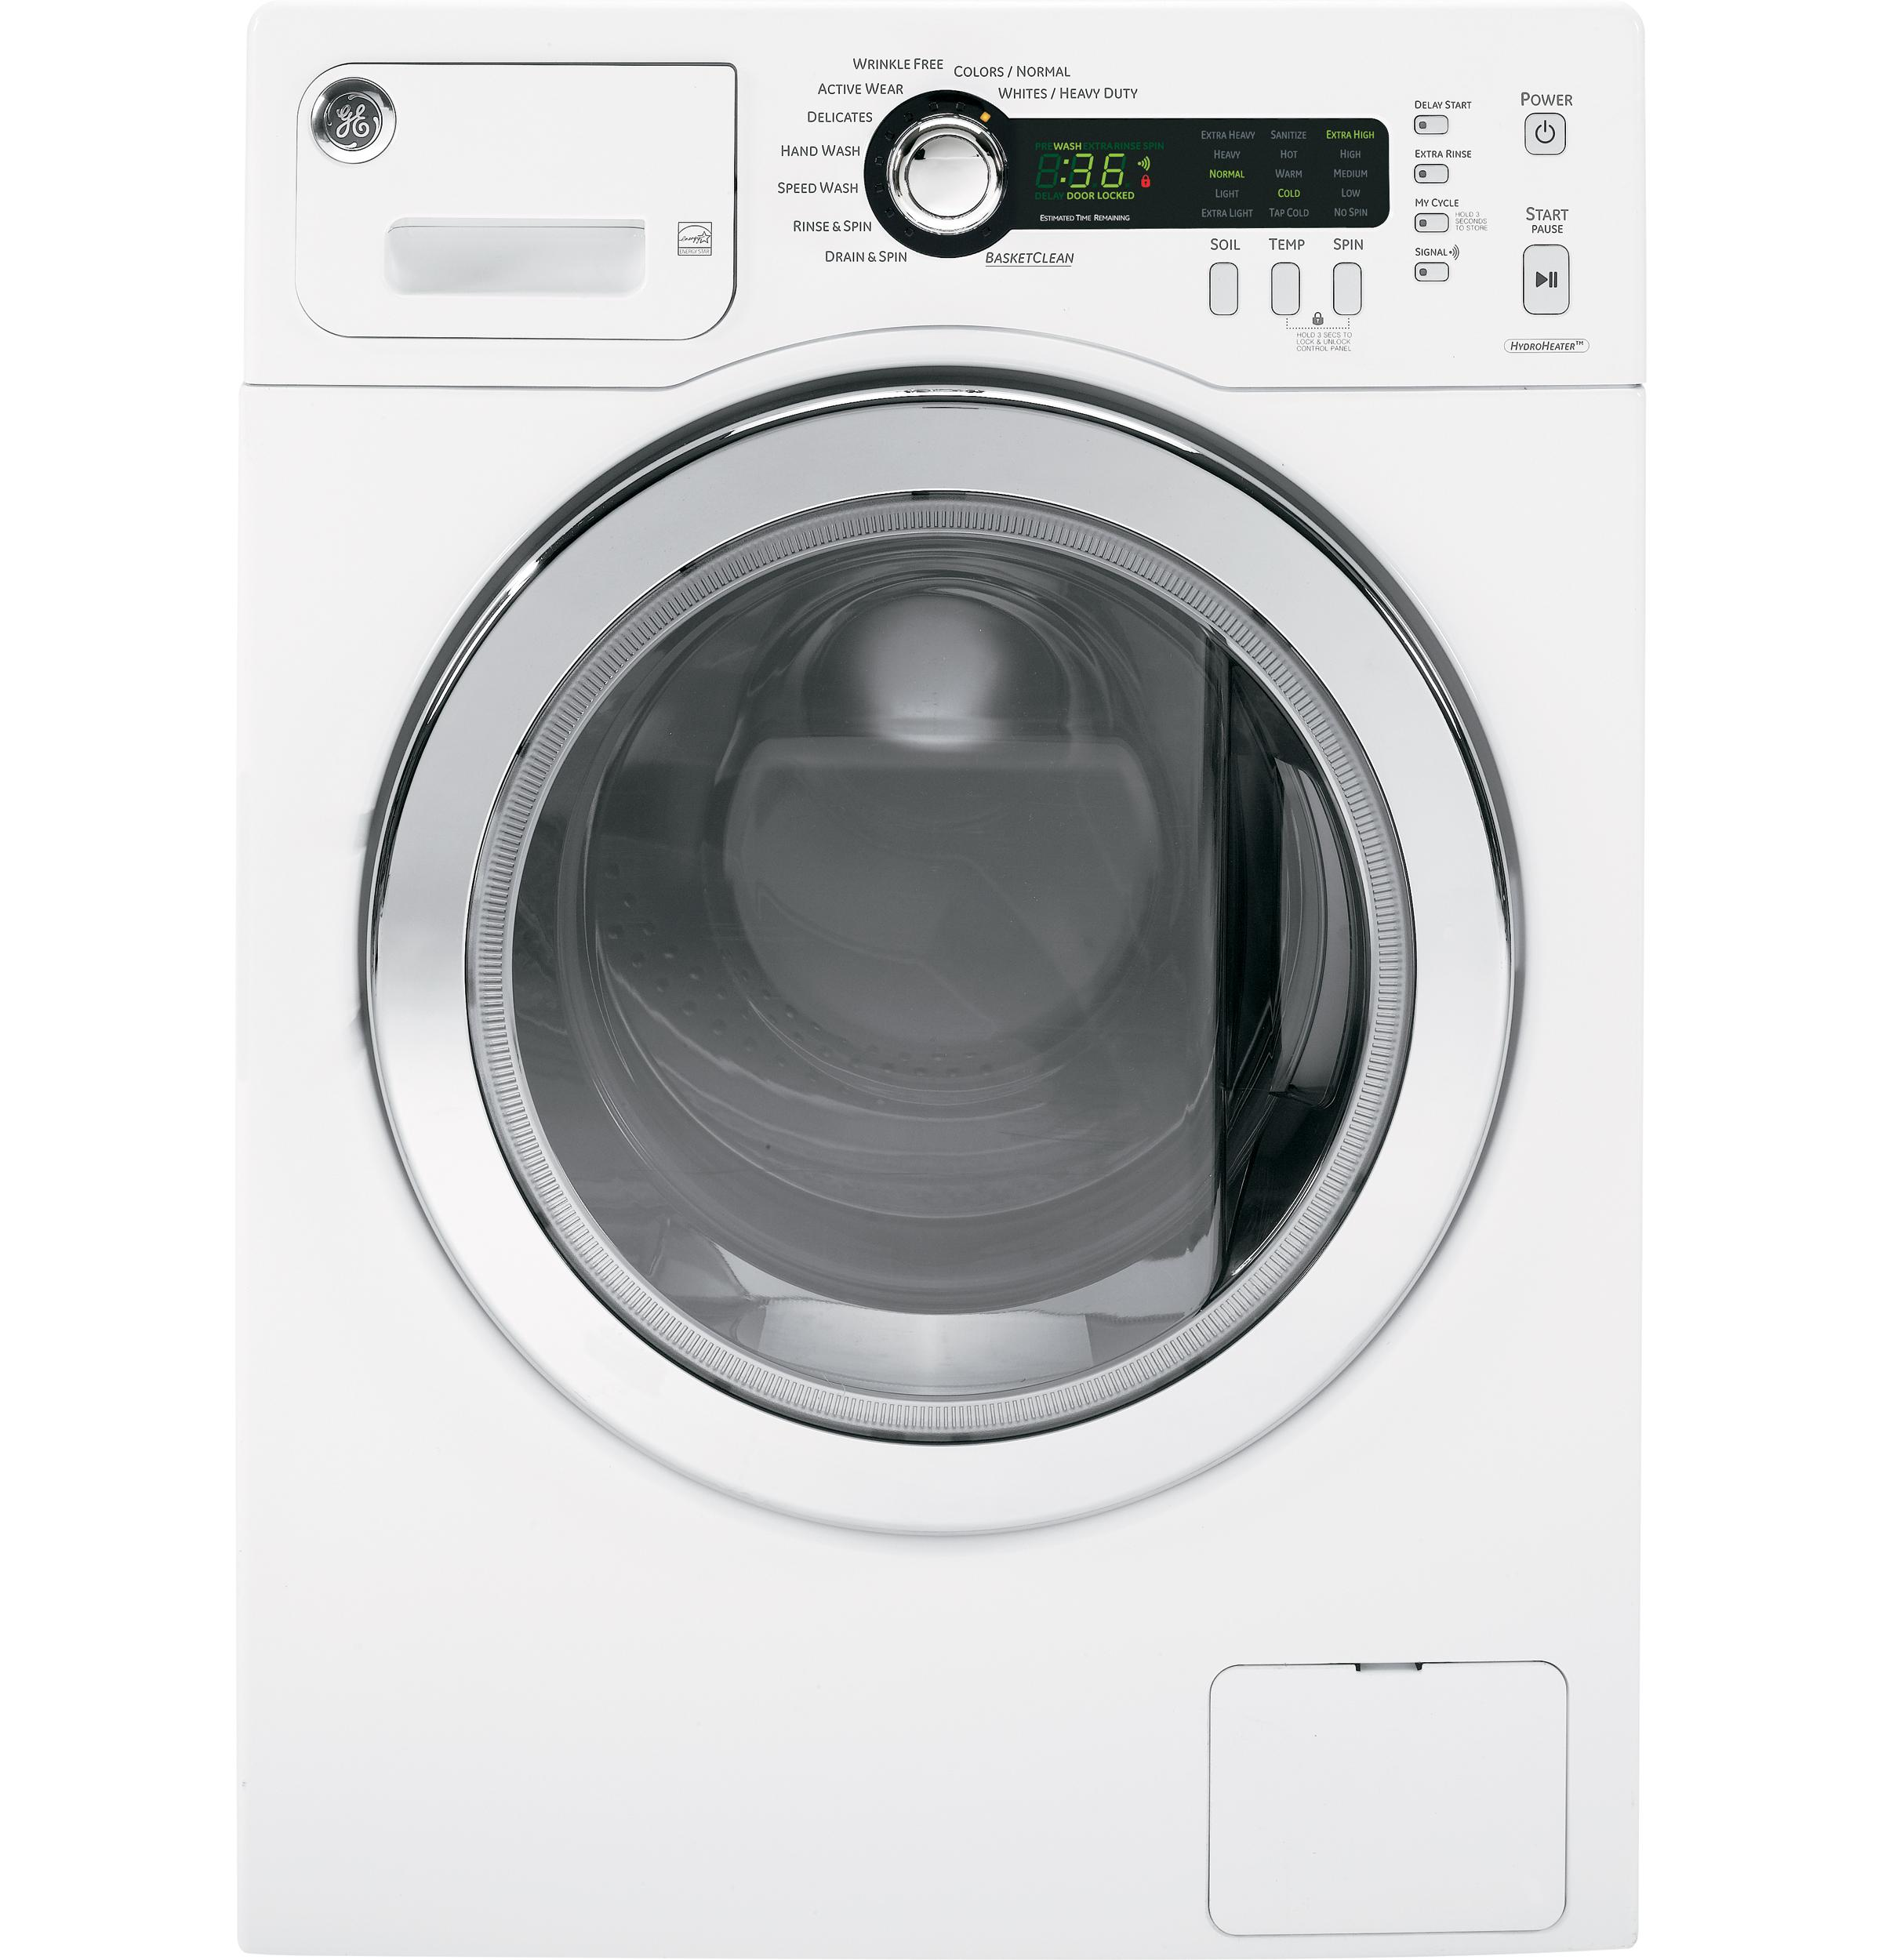 Wcvh4800kww Ge Ge 174 2 2 Cu Ft Front Load Washer White